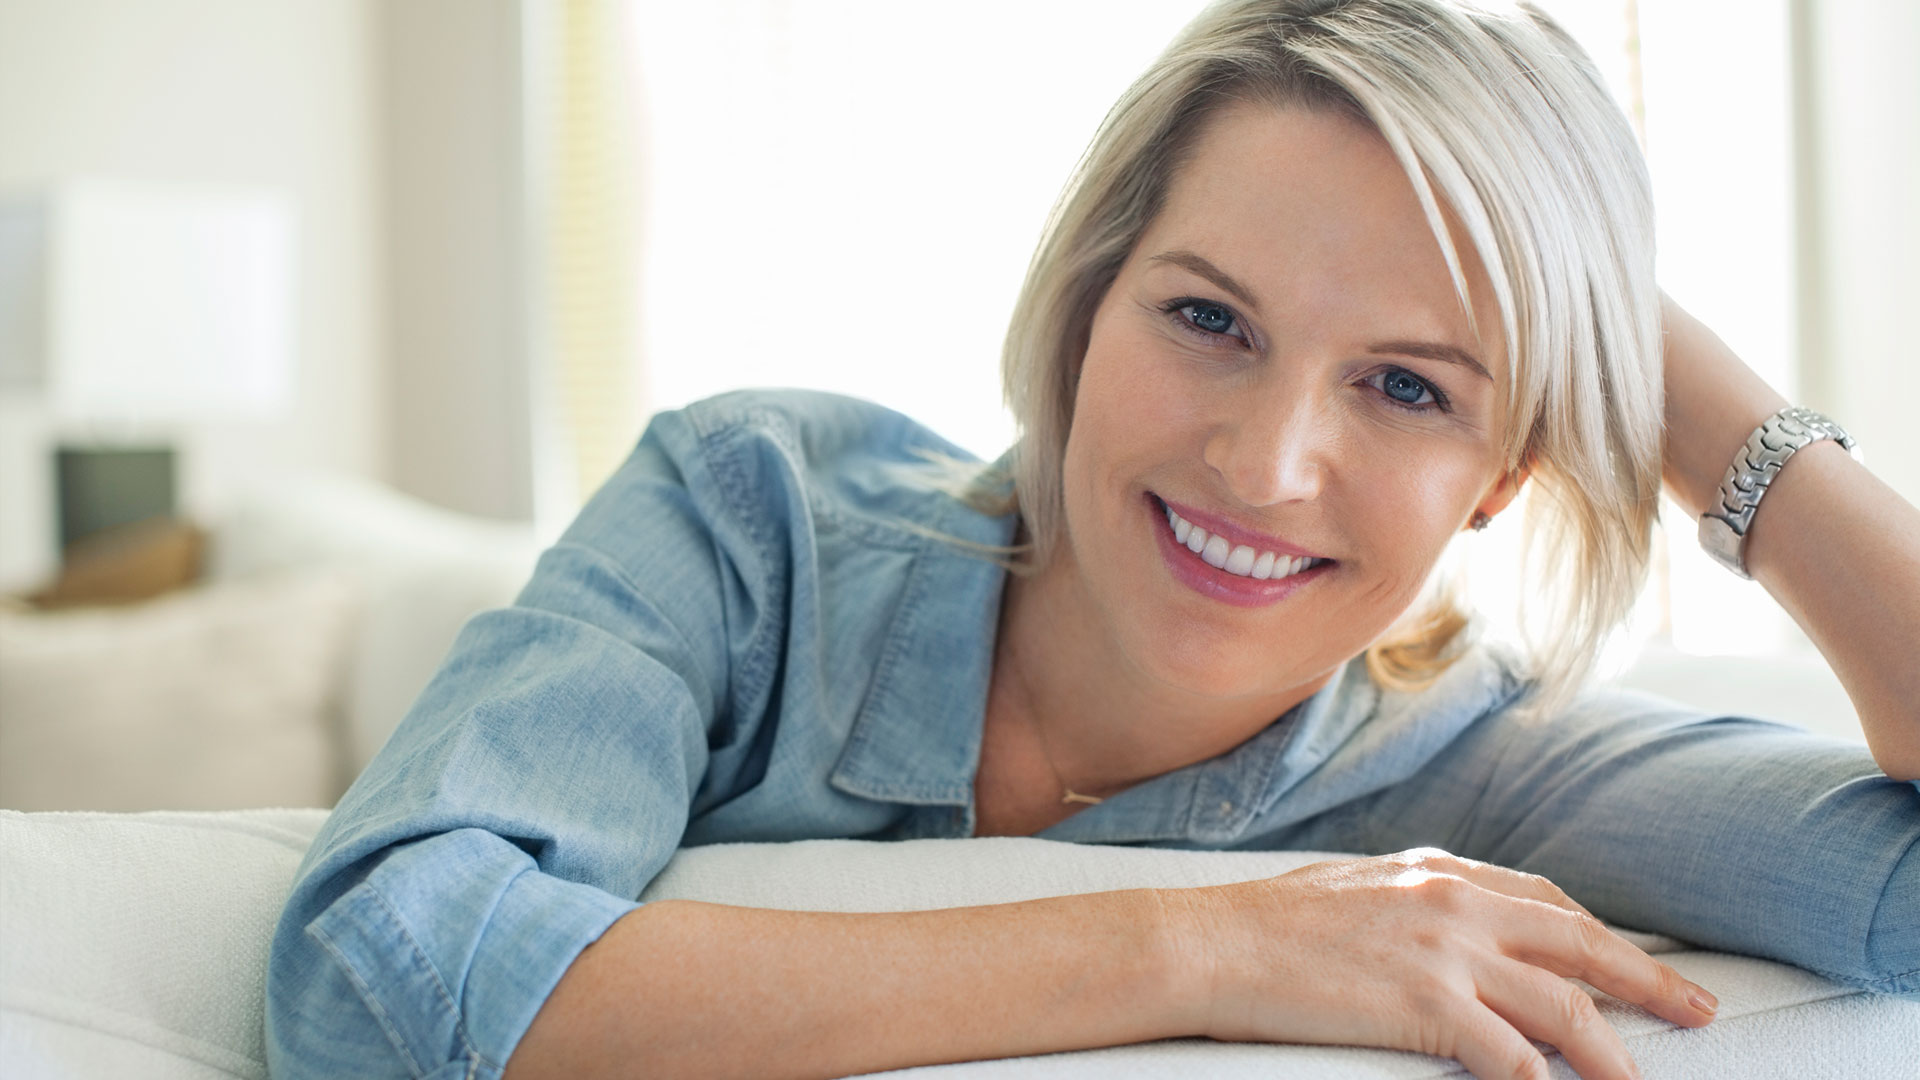 Portrait of smiling woman relaxing on sofa